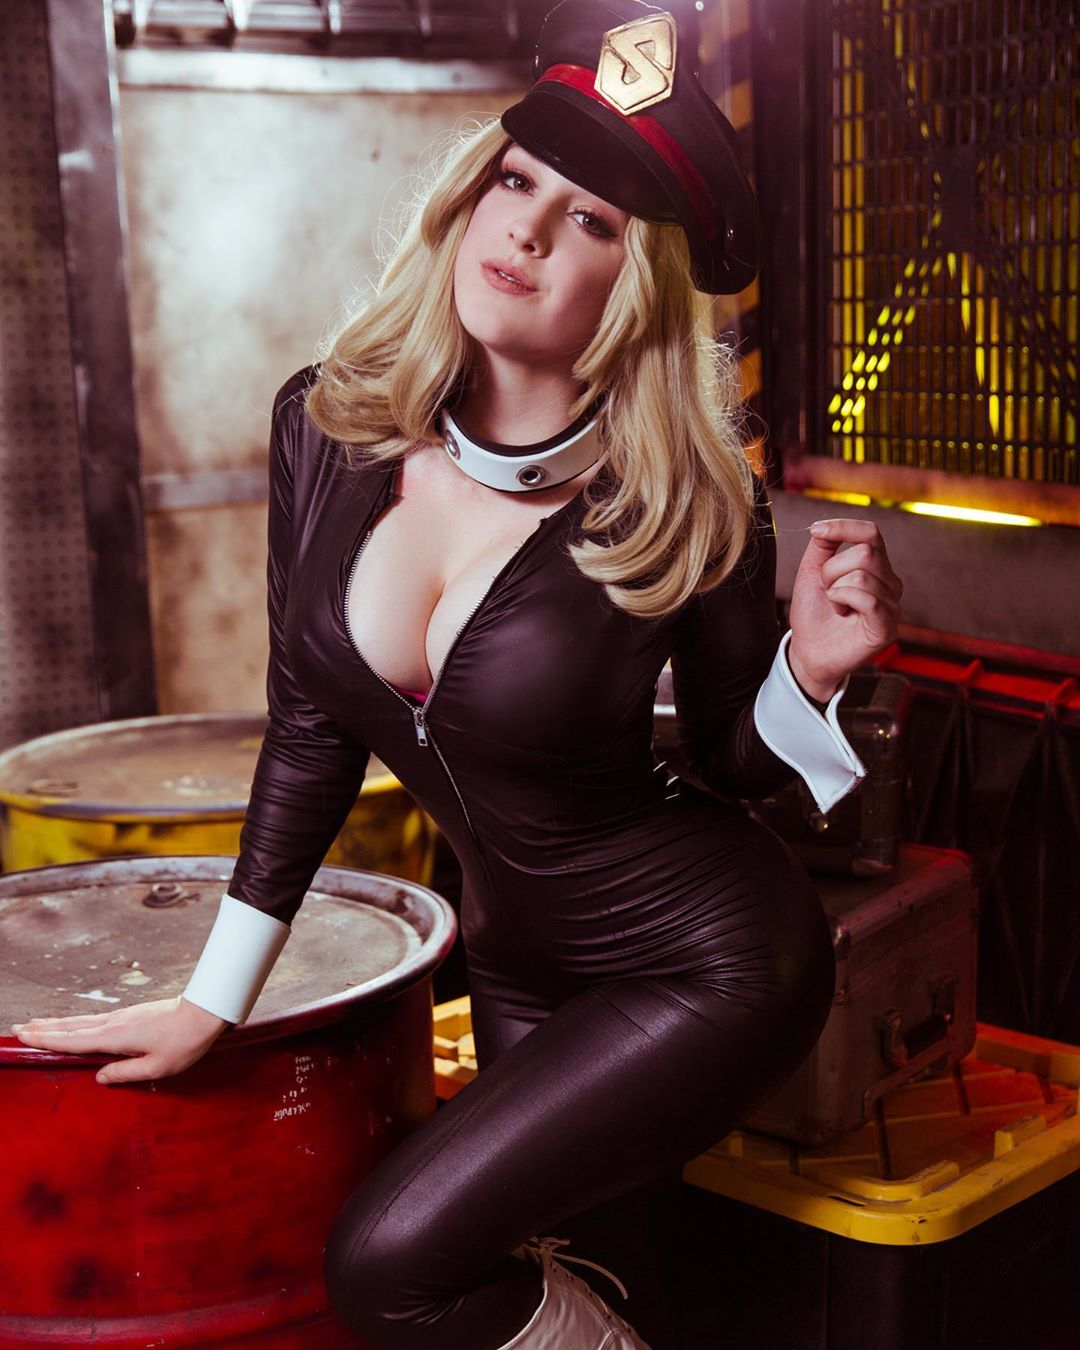 Camie From My Hero Academia By Reagan Kathryn